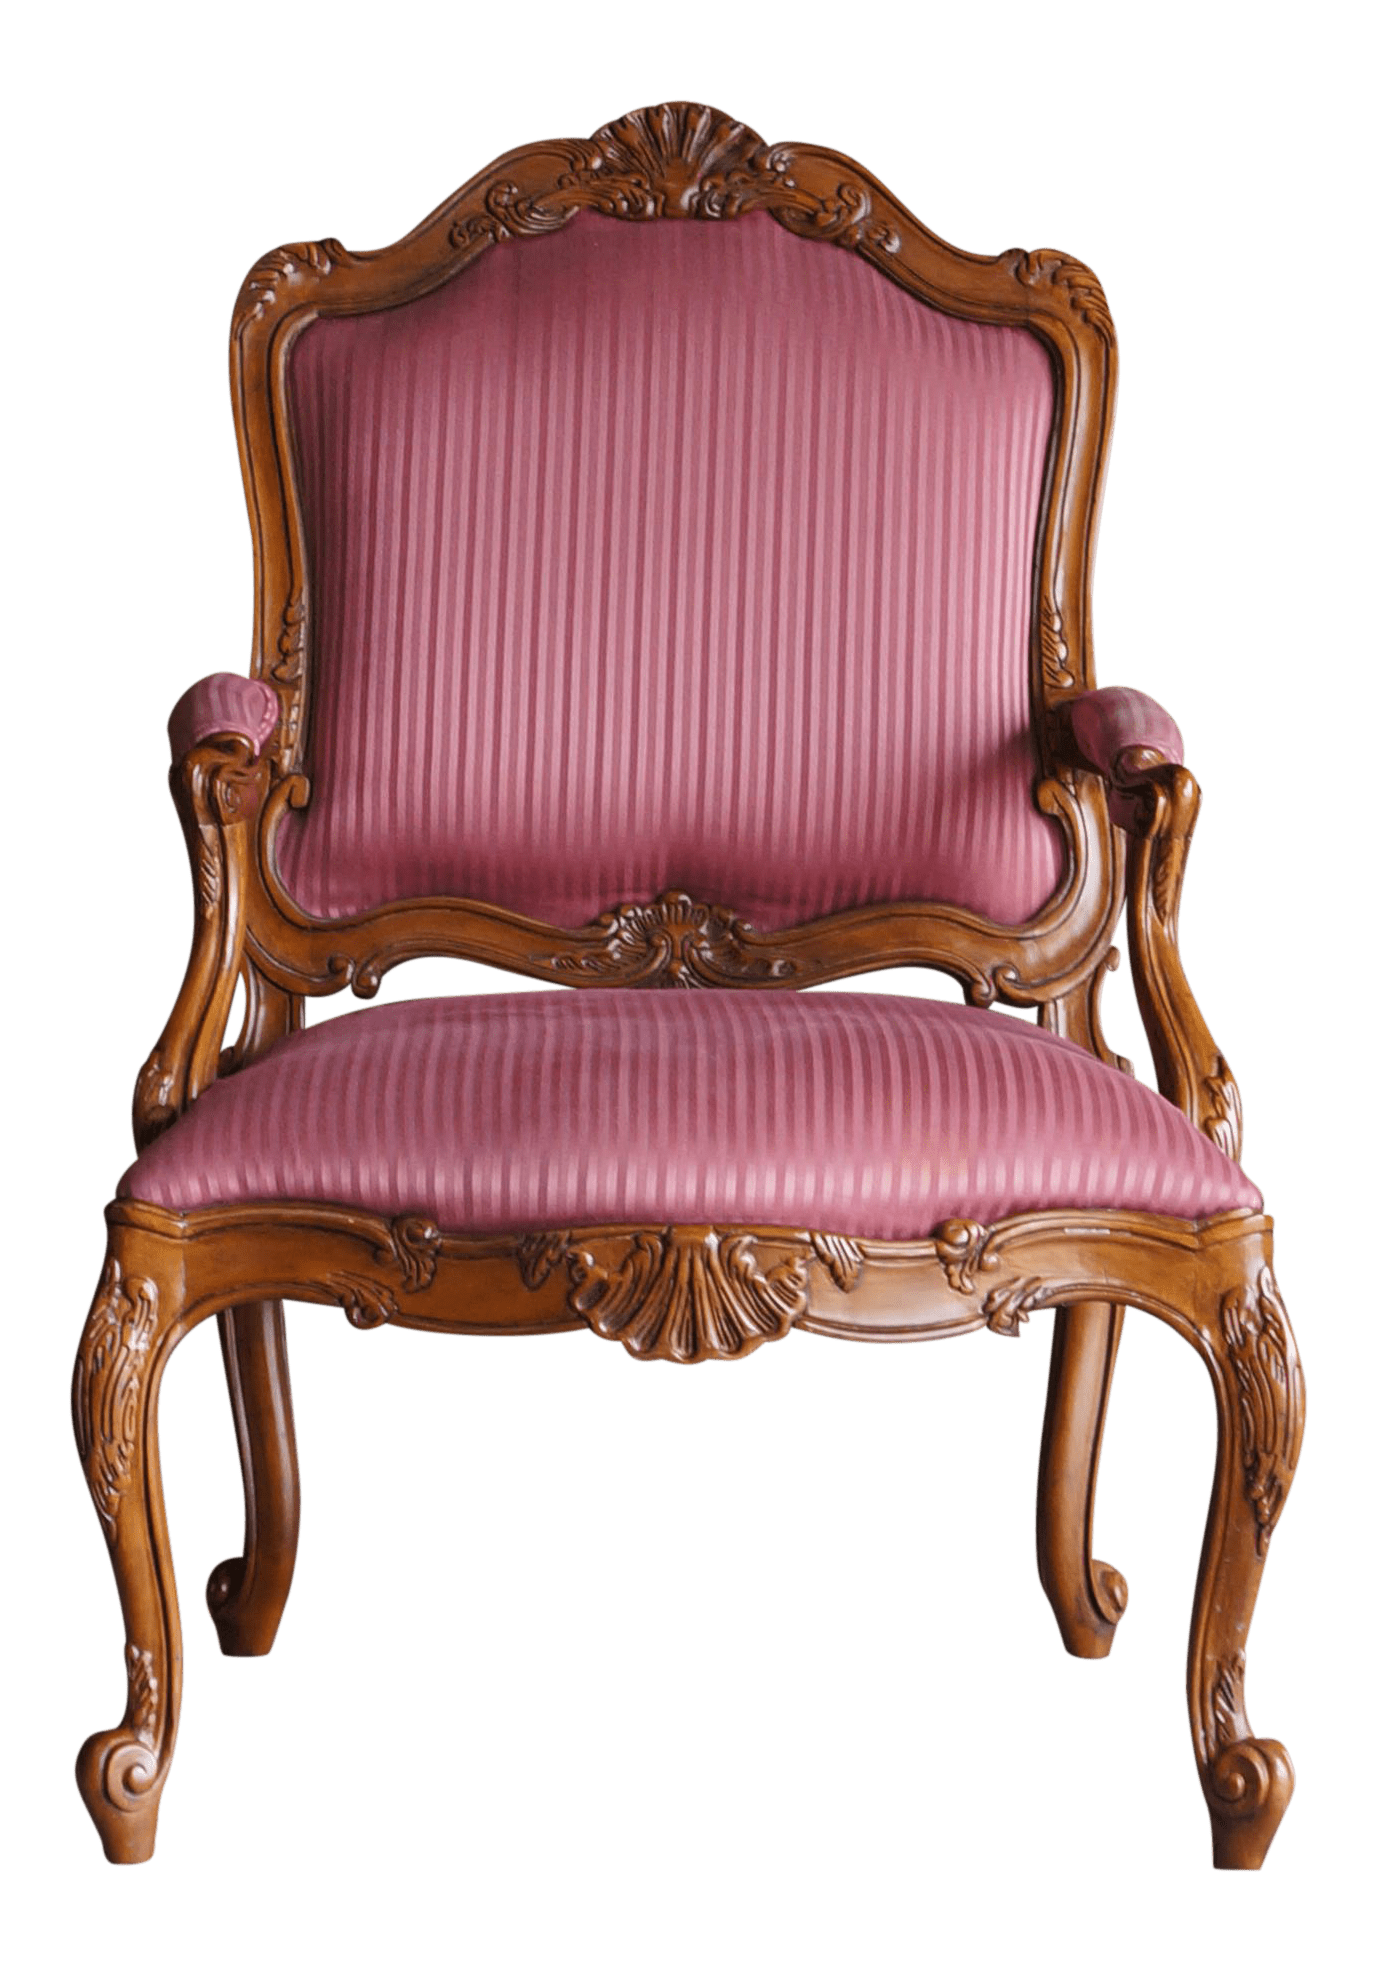 drexel heritage chairs modern wooden french carved accent chair chairish for sale